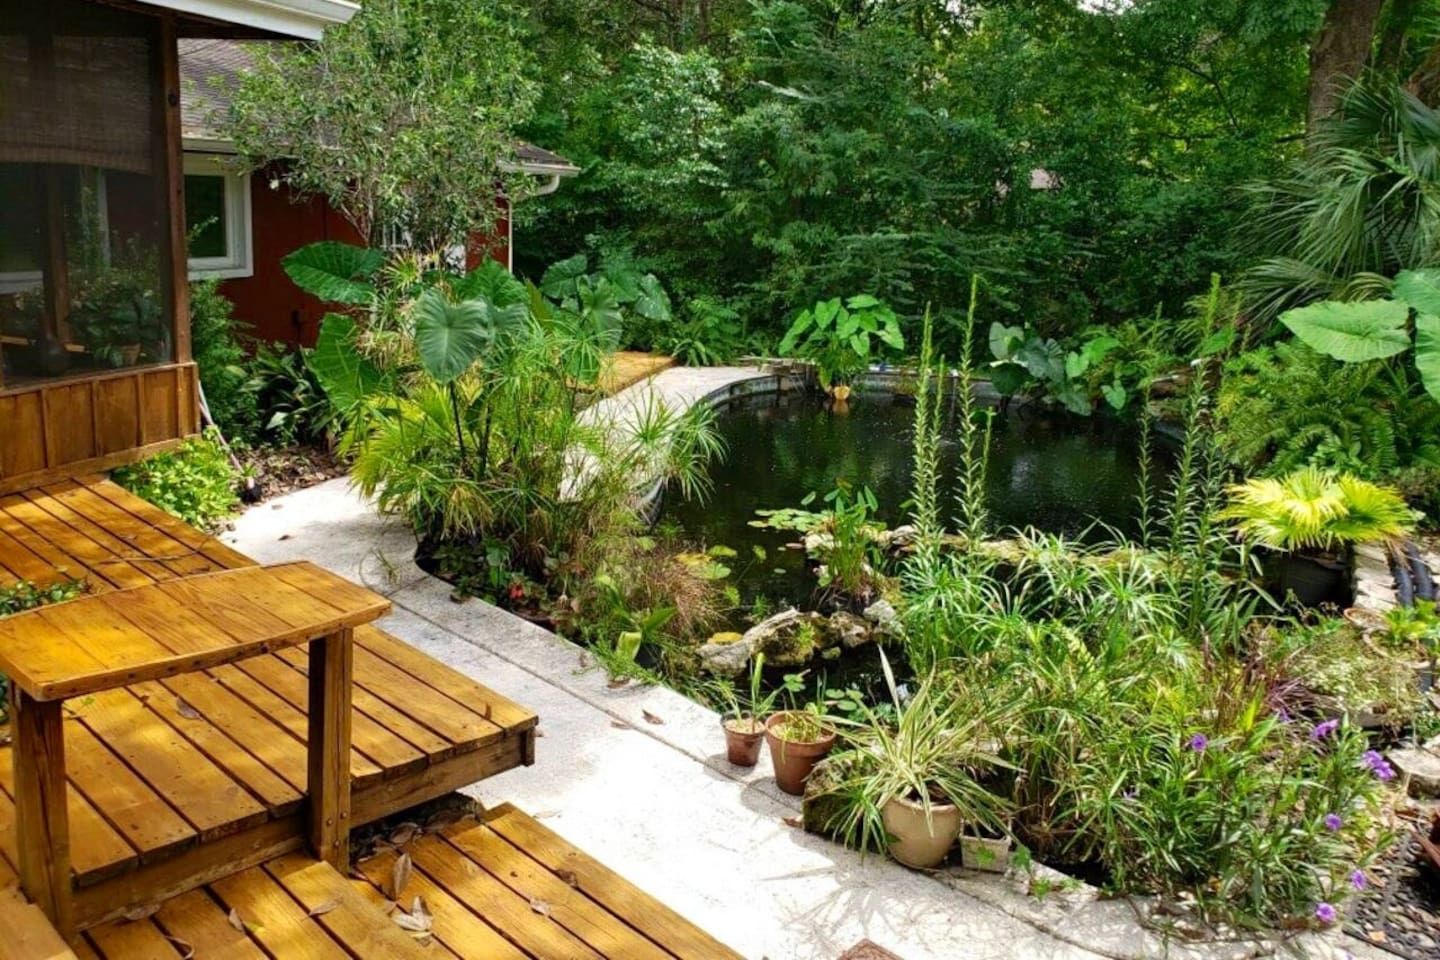 A surprising lovely, relaxing water feature awaits you by a large deck for your Yoga, Meditation,  Grilling or just relaxing after a full day.